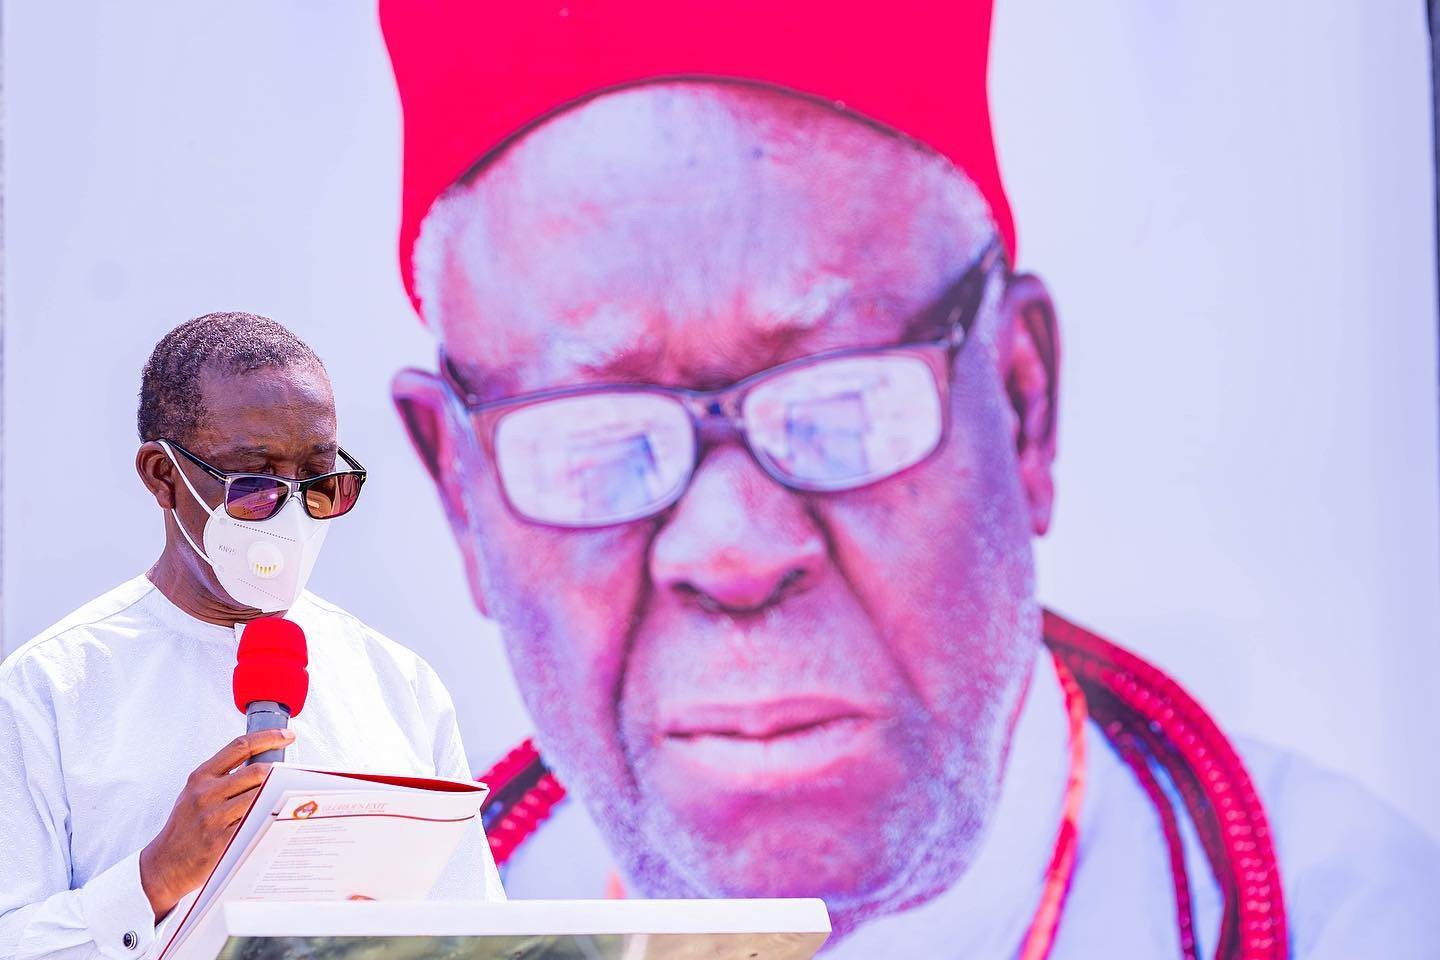 Photos from the funeral of the father of Delta state governor, Ifeanyi Okowa